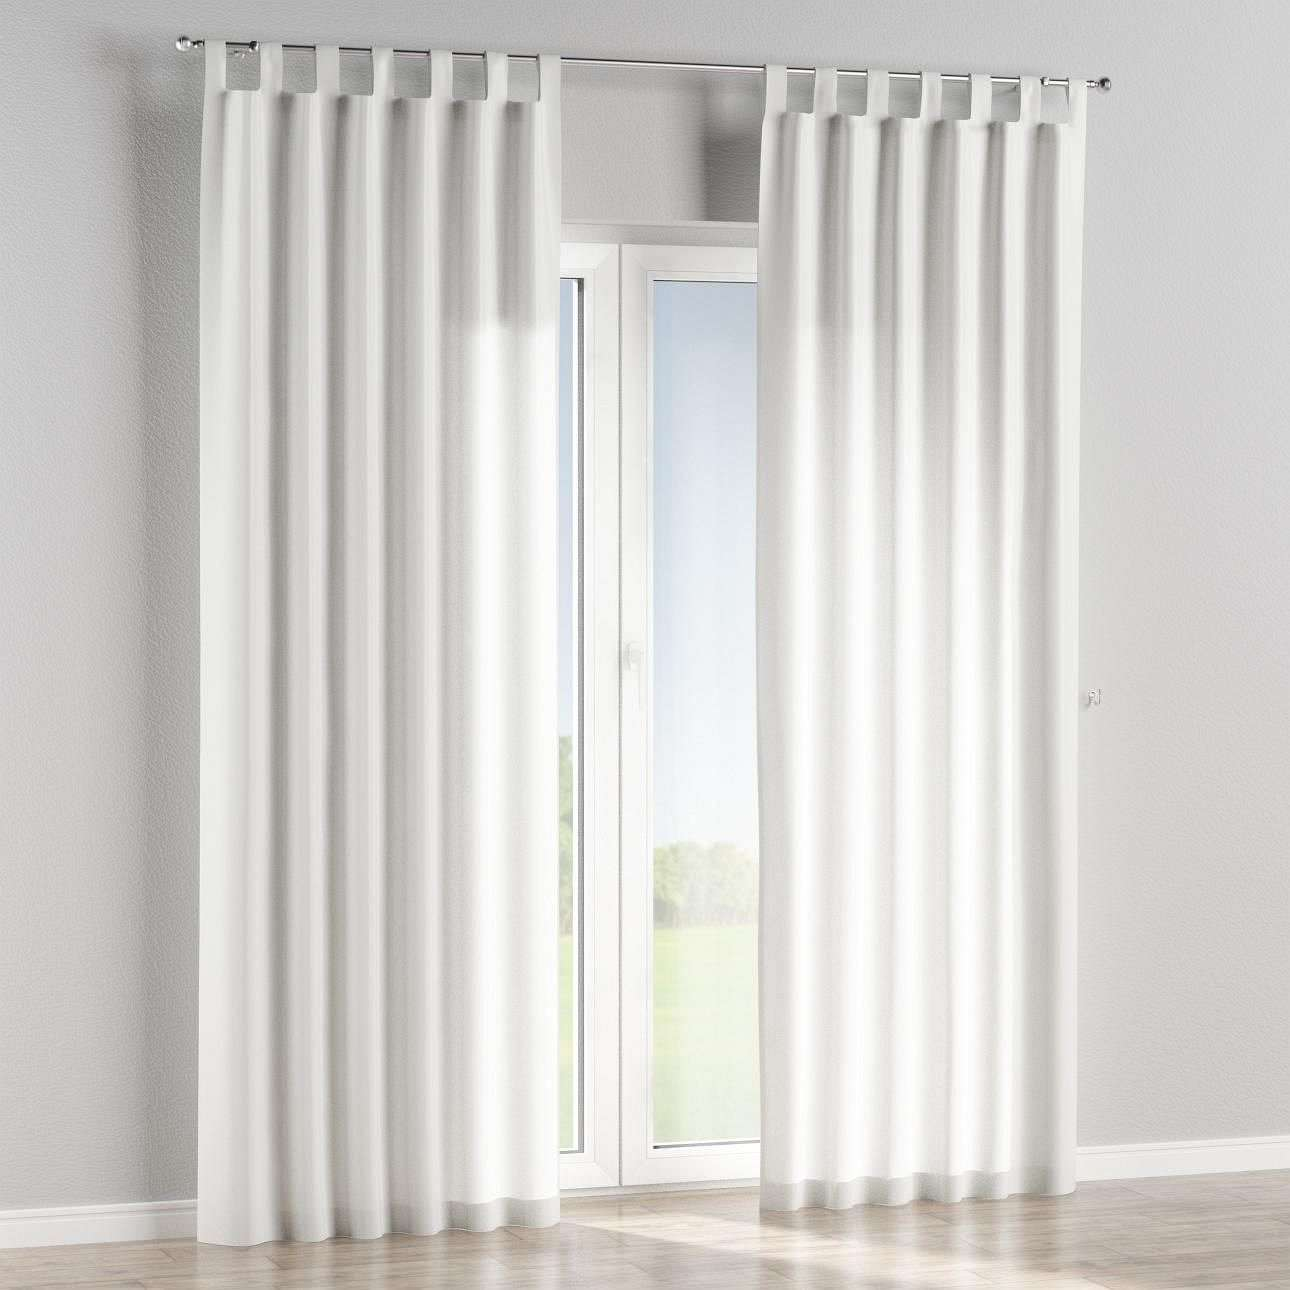 Tab top lined curtains in collection SALE, fabric: 135-64